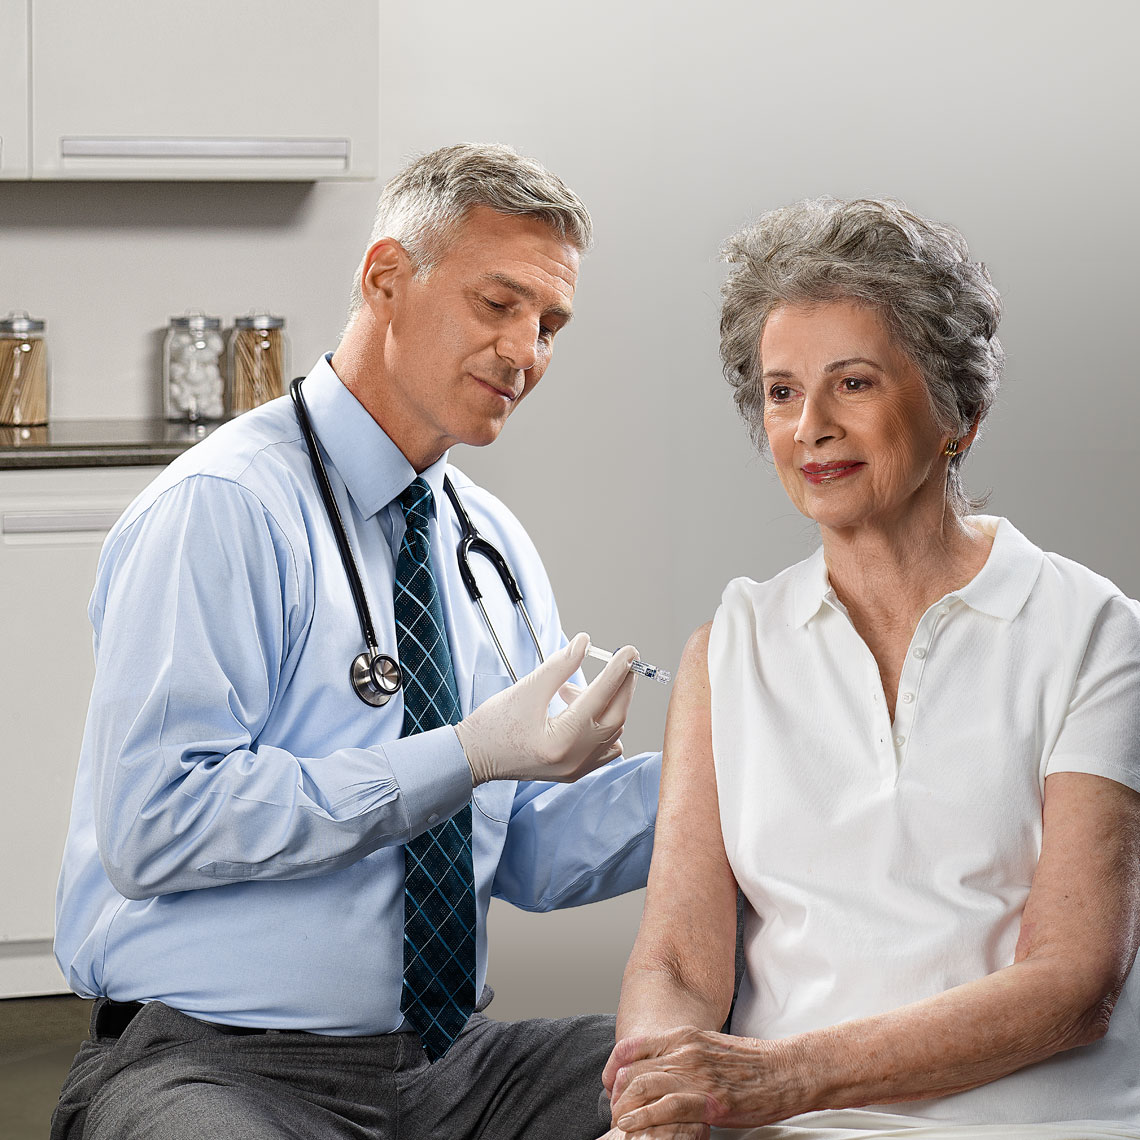 Doctor giving a flu shot to a patient